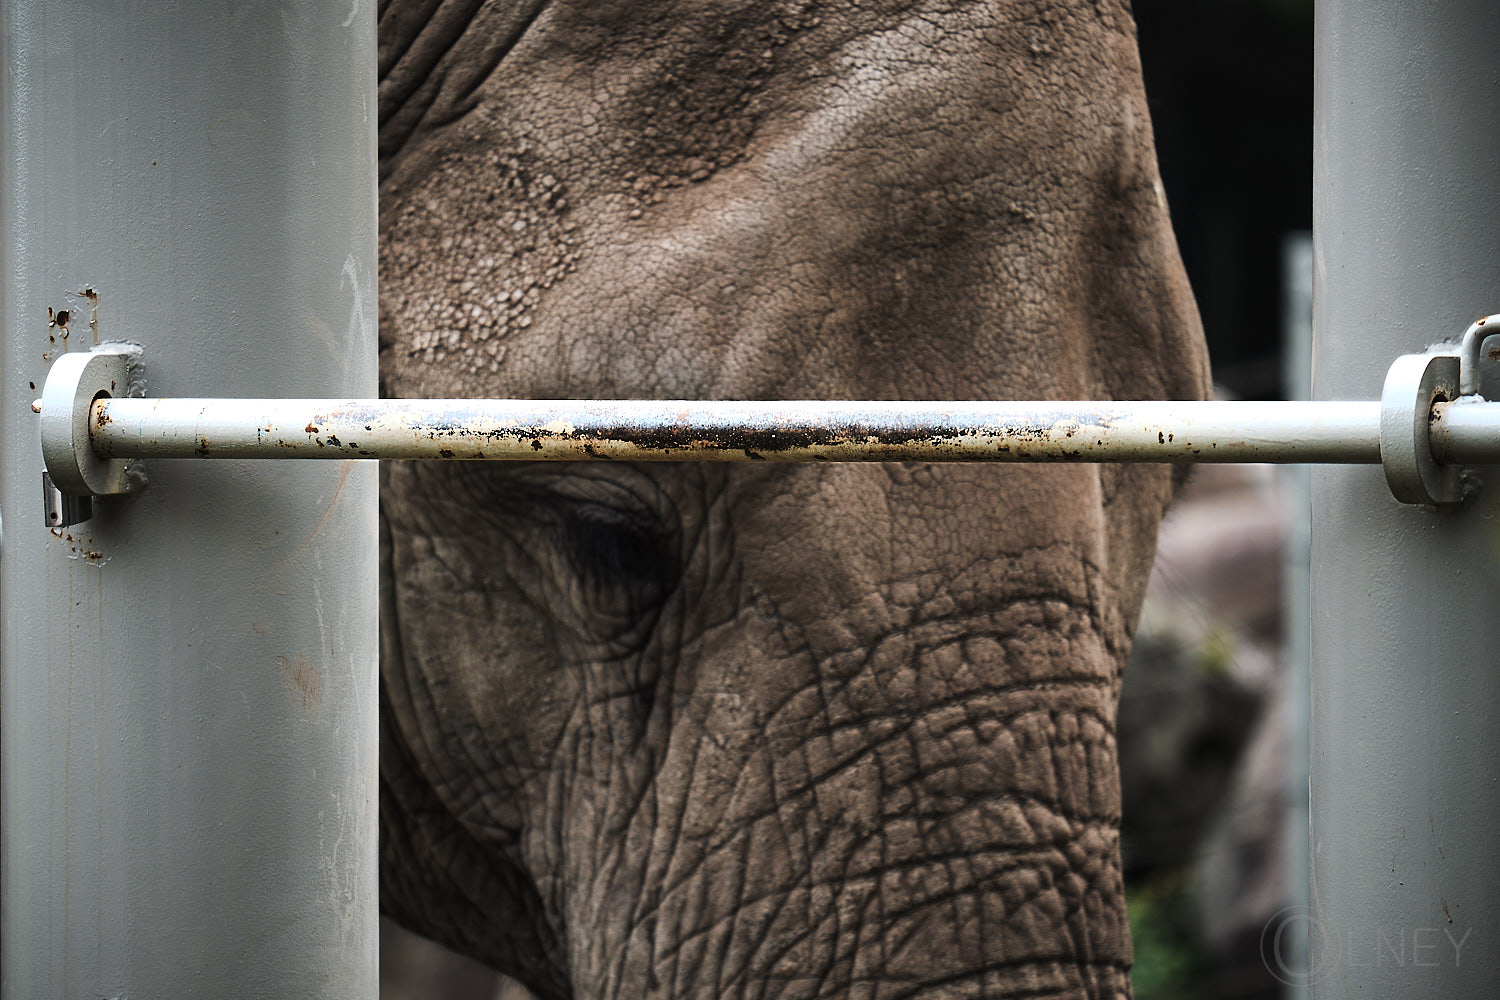 caged elephant at granby zoo